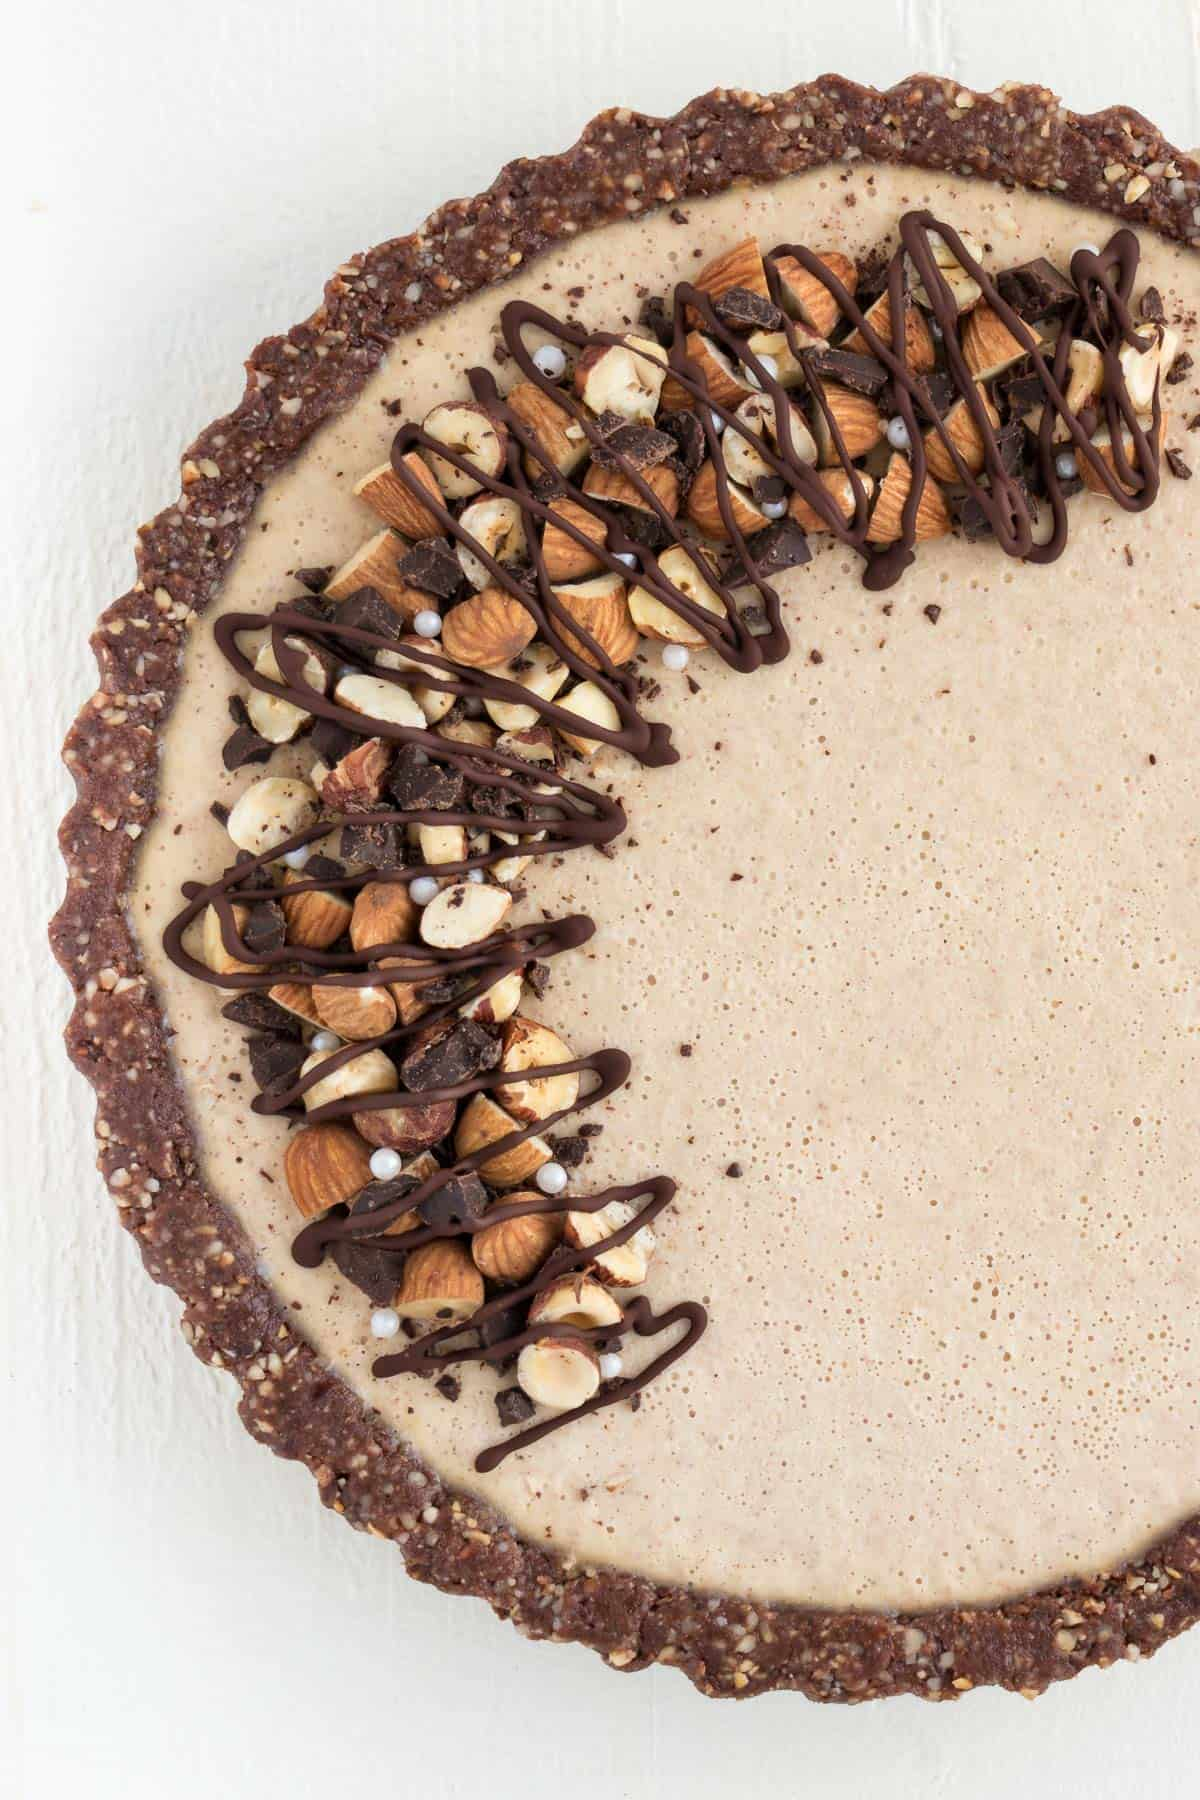 close up no bake cheesecake topped with chocolate, almonds, and hazelnuts